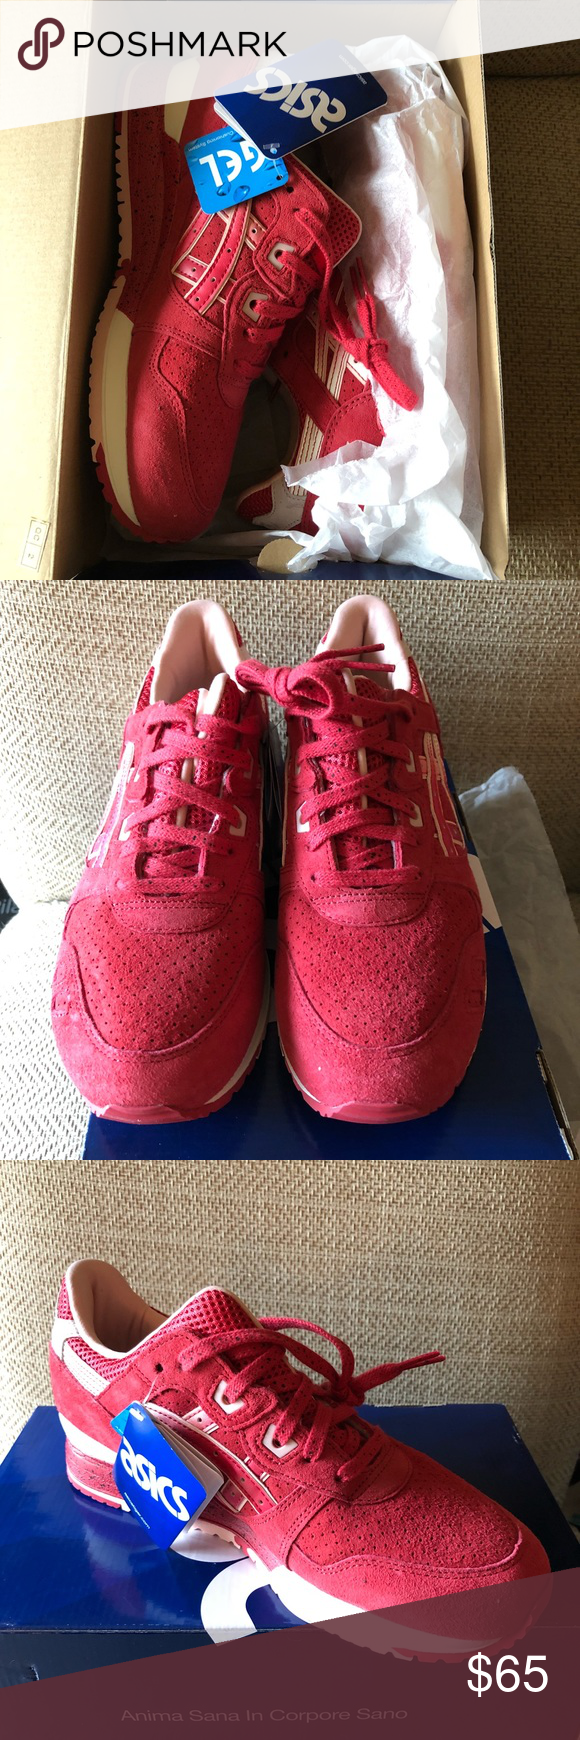 ASICS Gel Lyte 3 NWT women 8.5 men 7 NIB ASICS Gel-lyte 3 red and cream  suede running shoe- easily unisex with a woman s 8.5 and a man s 7! 3309944a36